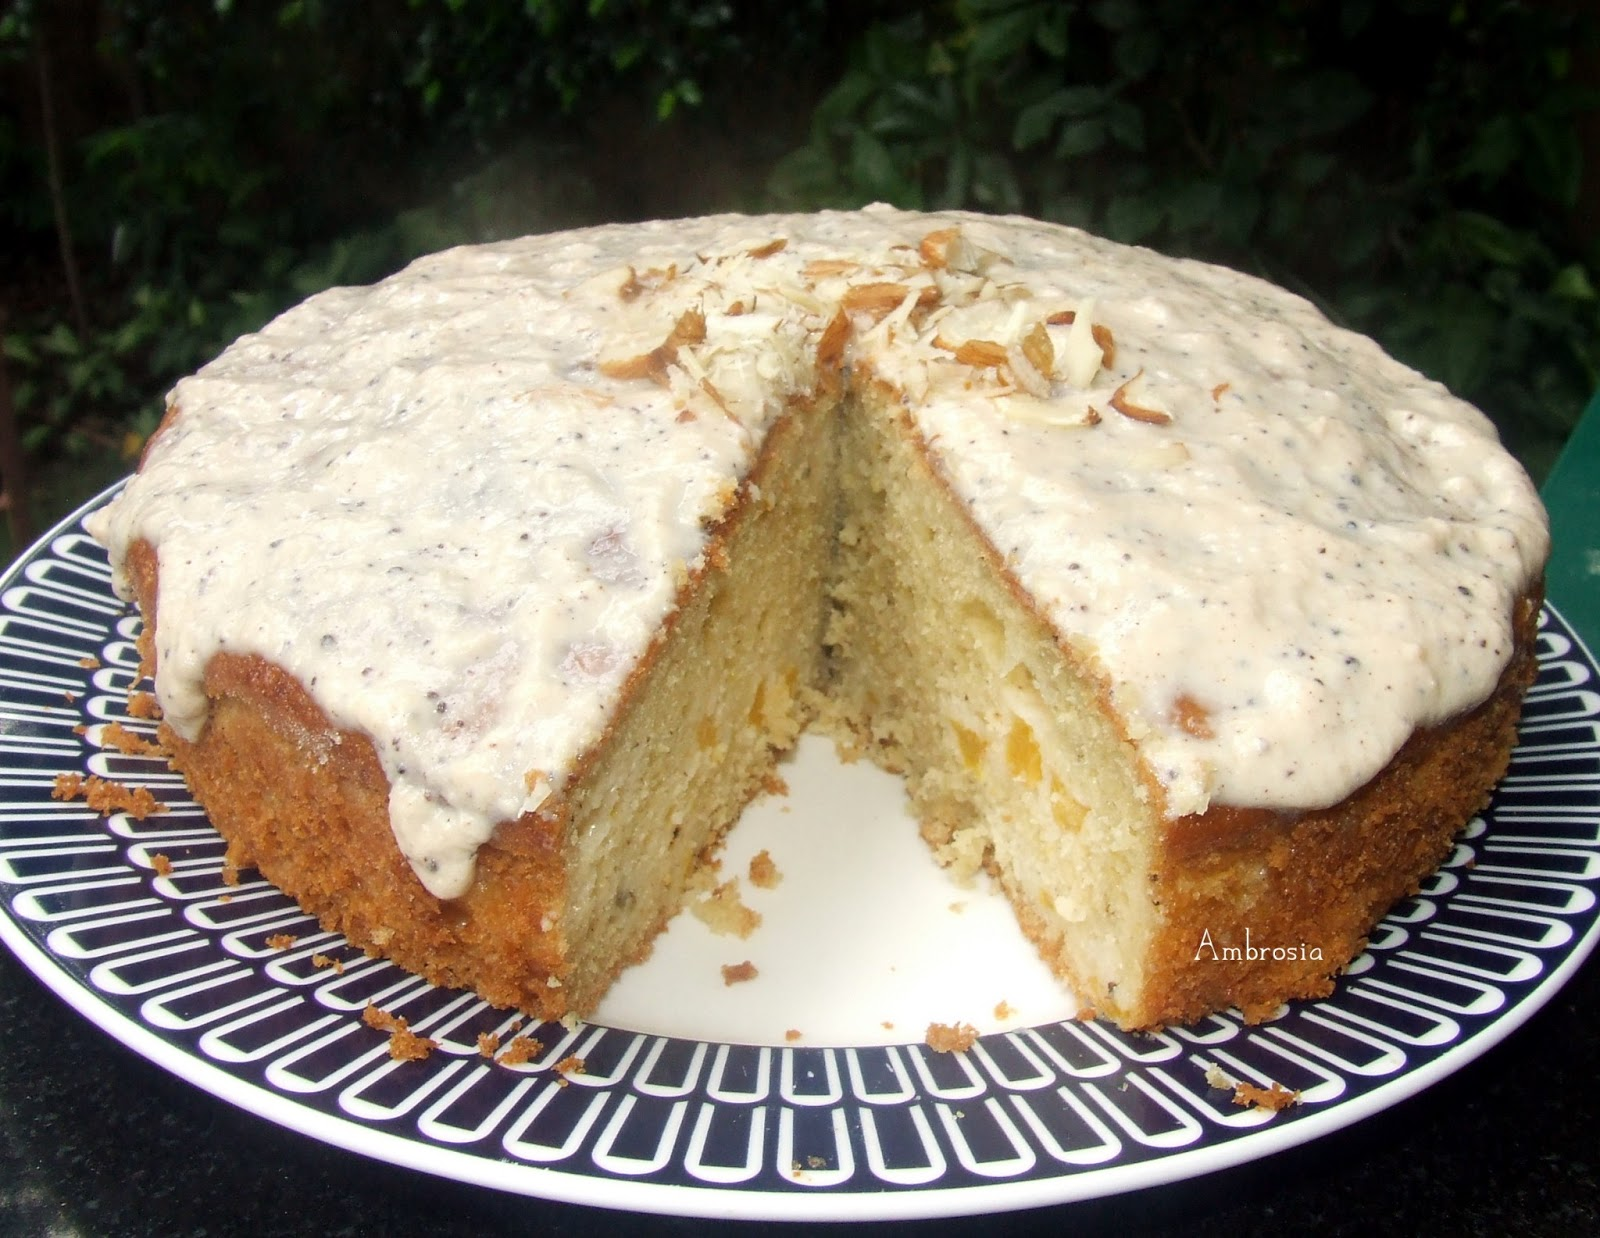 AMBROSIA: Peach Yogurt Cake With Cinnamon Glaze